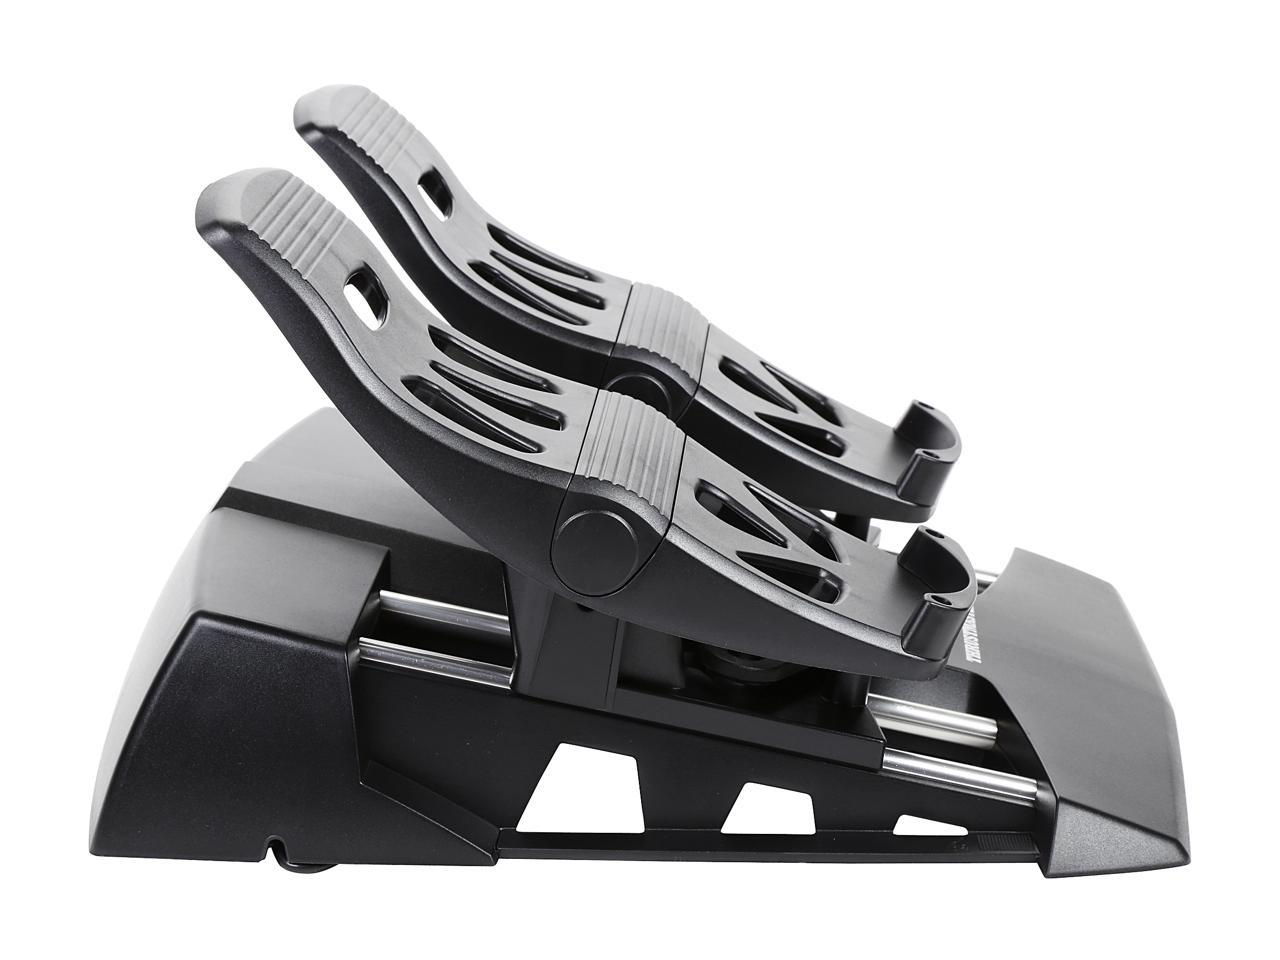 Details about Thrustmaster TFRP T Flight Rudder Pedals